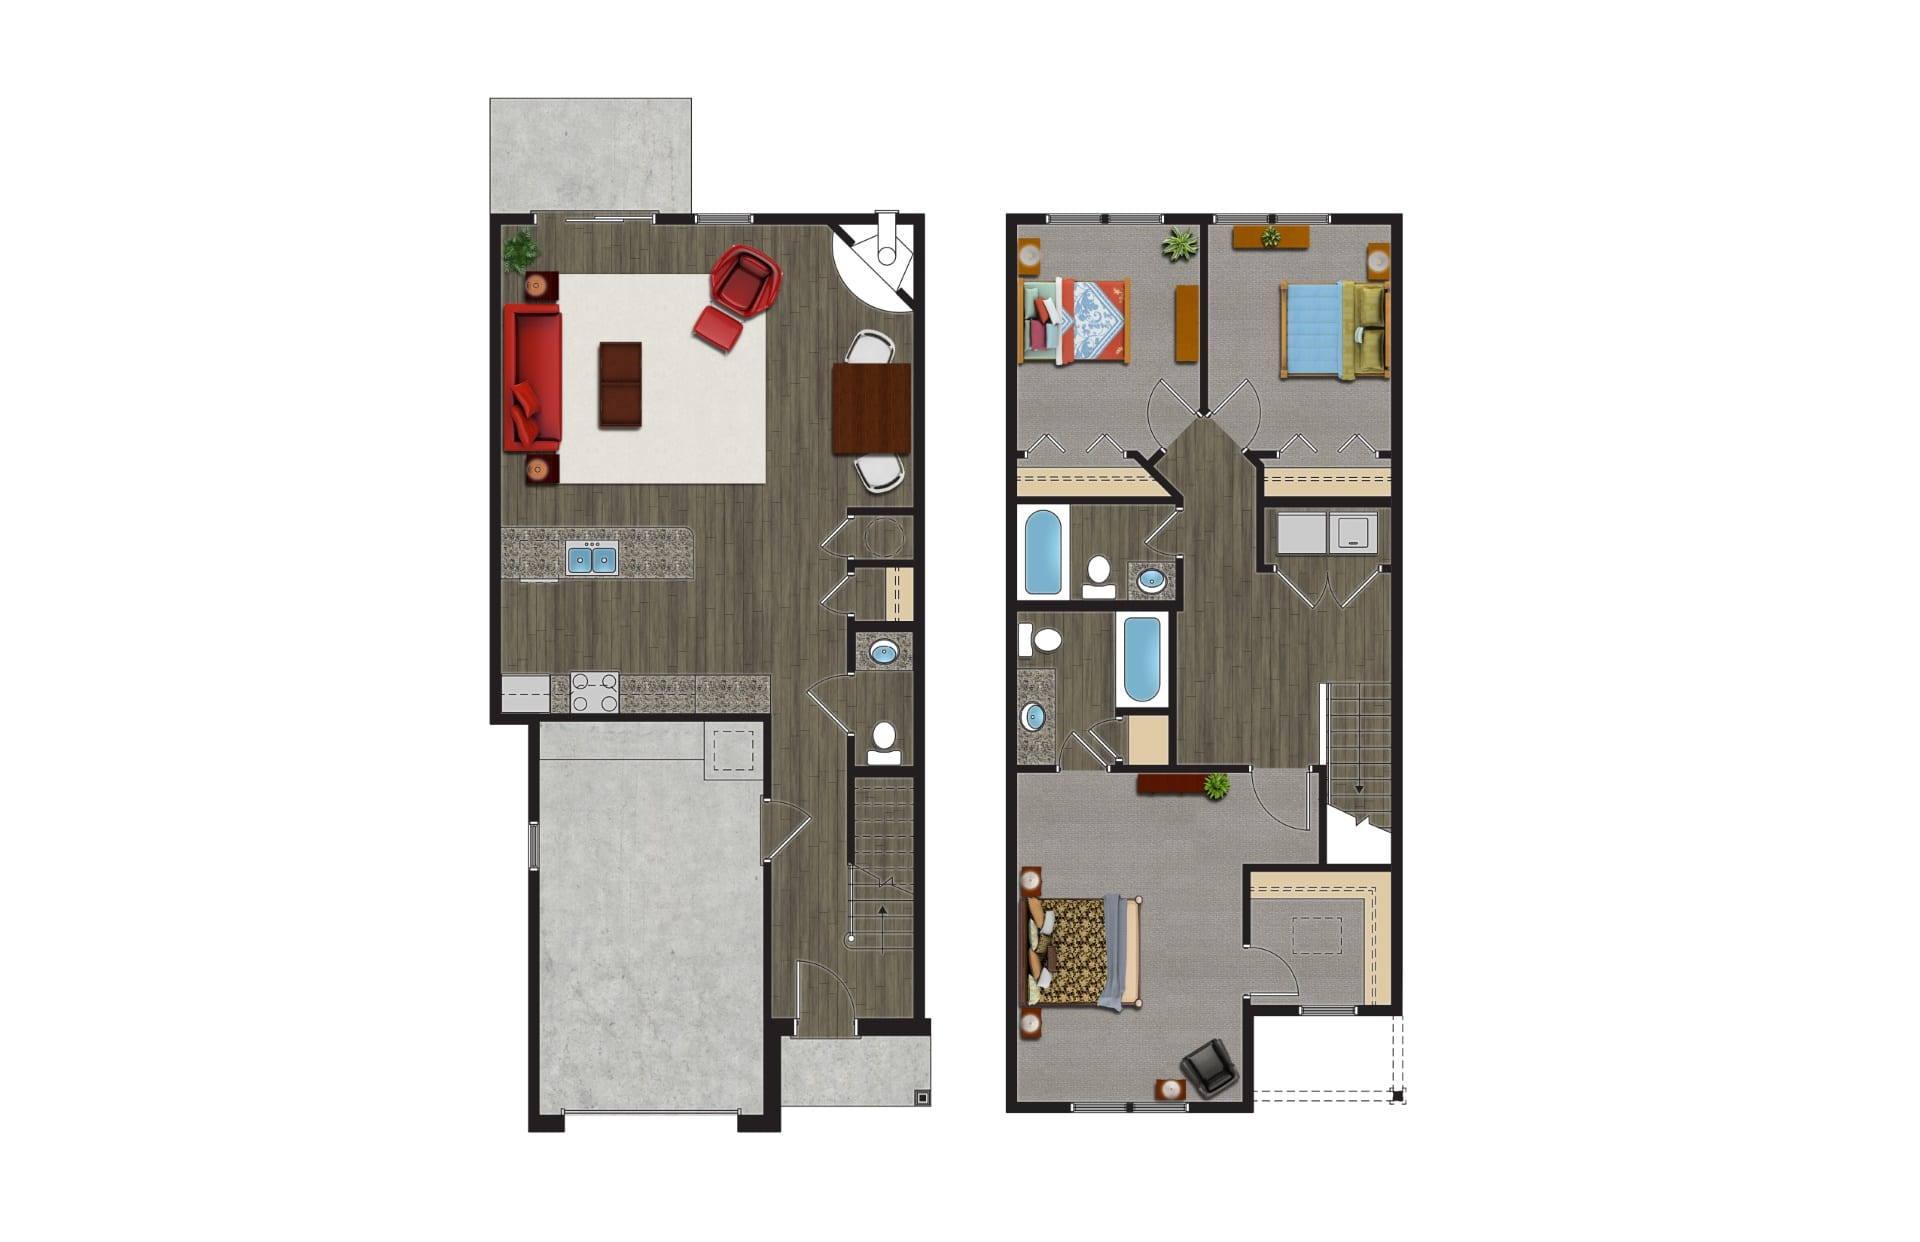 A Floor Plan of The Maple, Luxury Townhomes with Garages for rent. The 2 Story, 3 Bedroom Townhomes in Orchard Park NY are pet friendly townhomes.